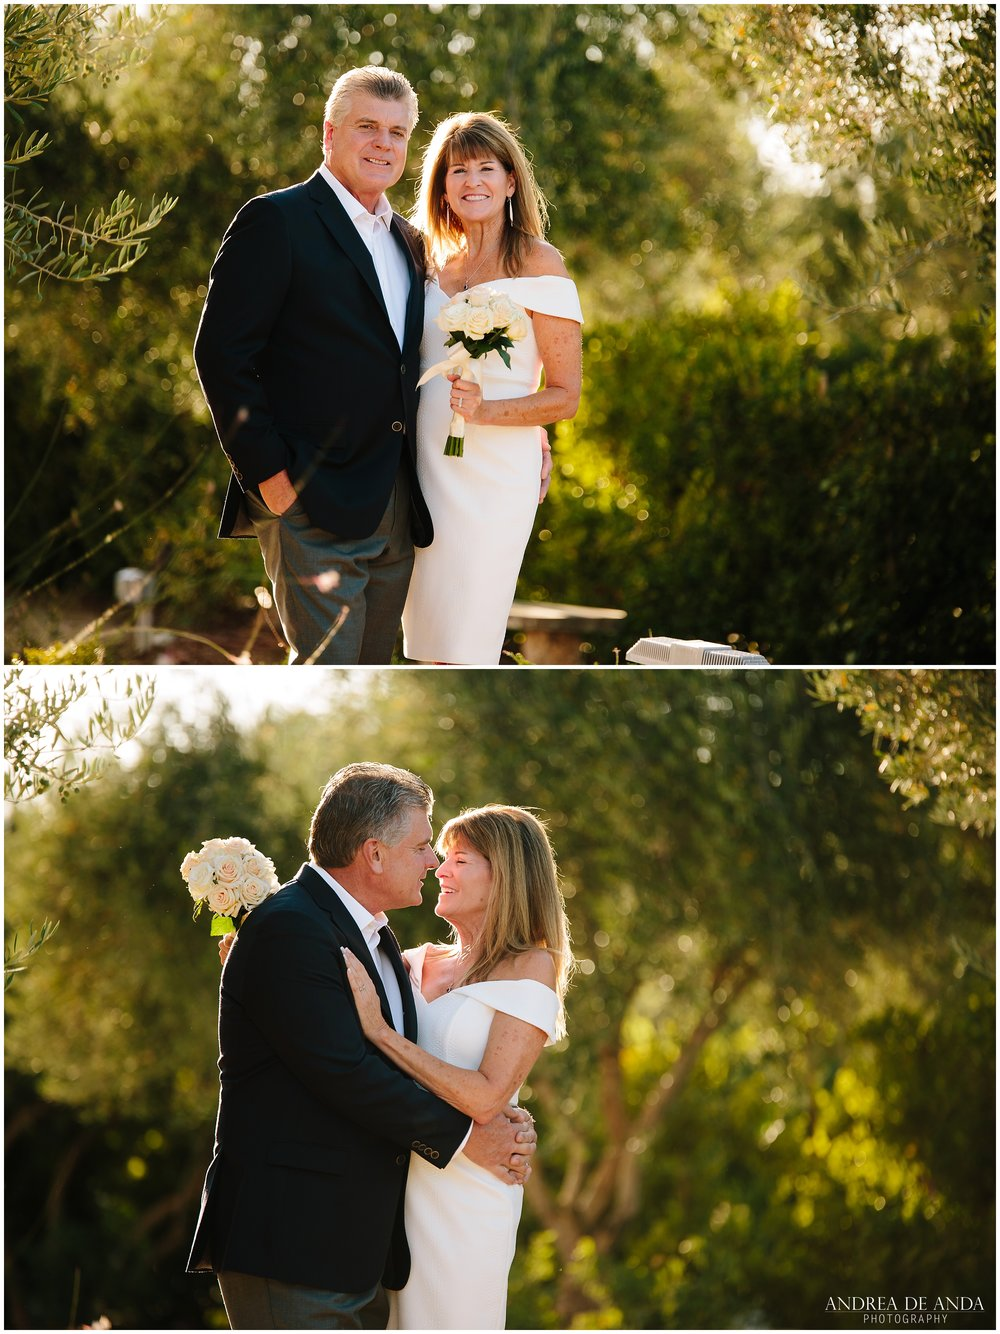 Bride and Groom creative photos, Allegretto Vineyard in Paso Robles